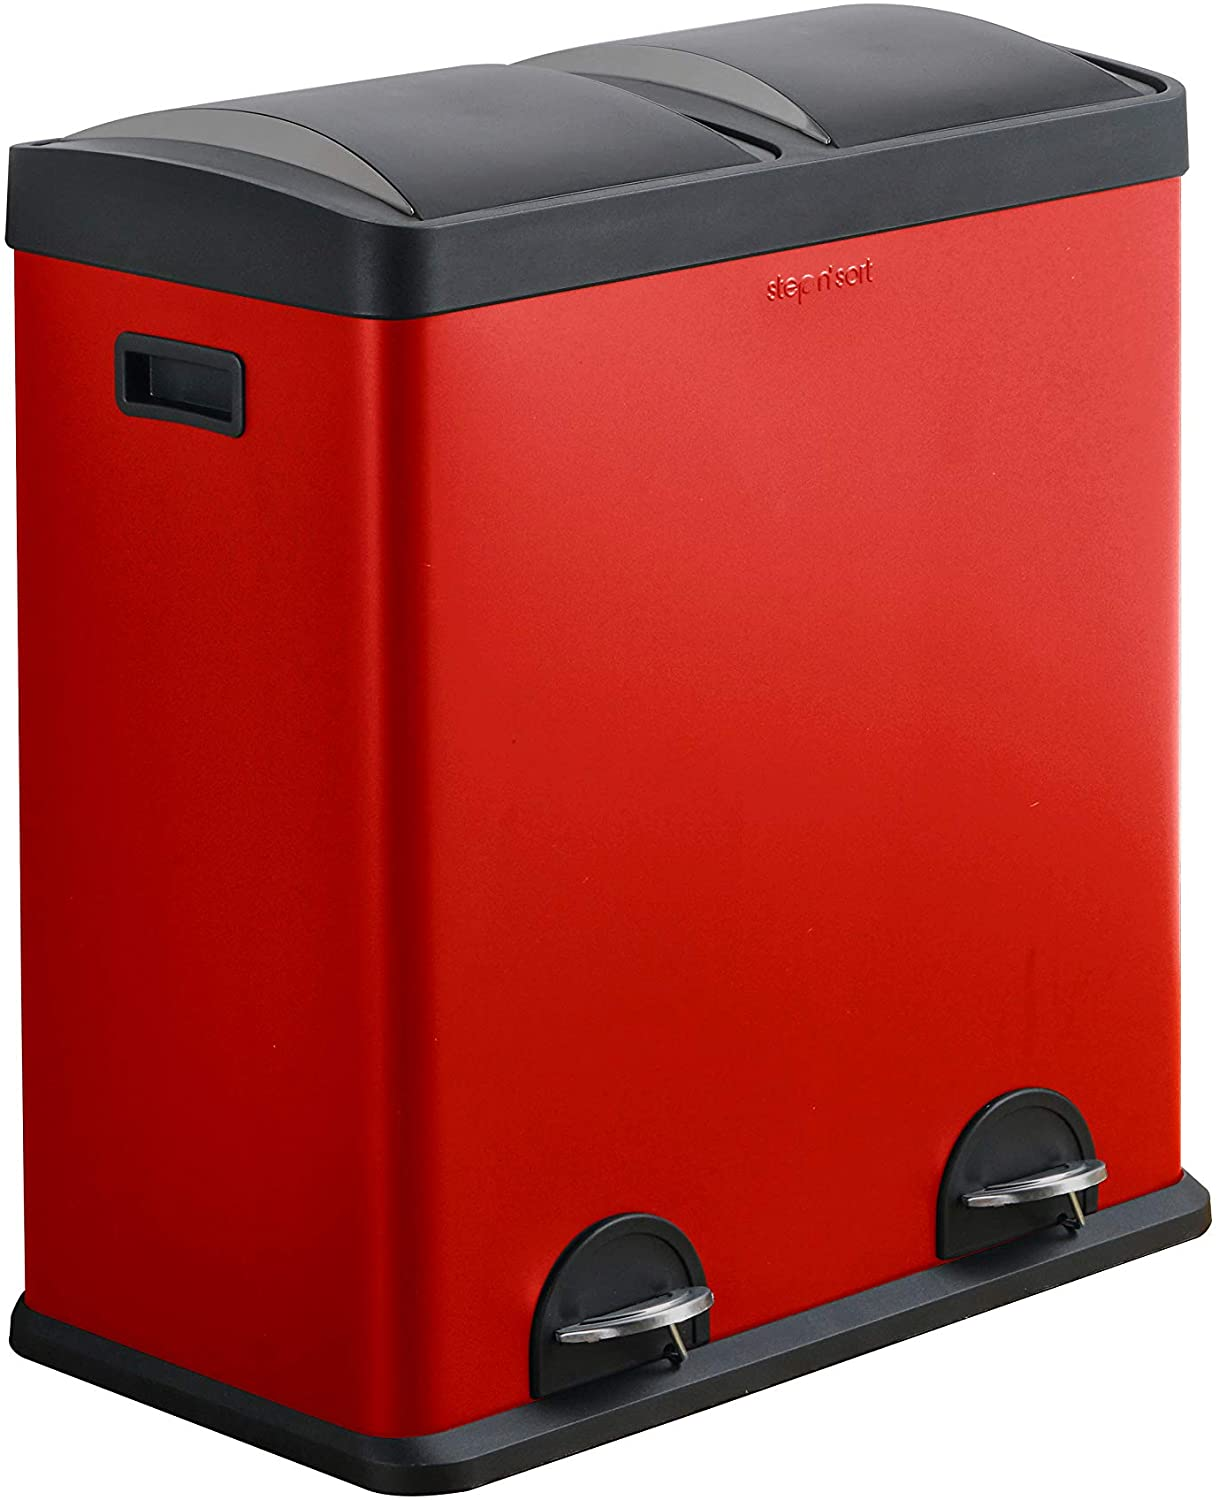 Step N' Sort 16 Gallon RED Trash Dual and Be super welcome New mail order Reclying Bin Gall